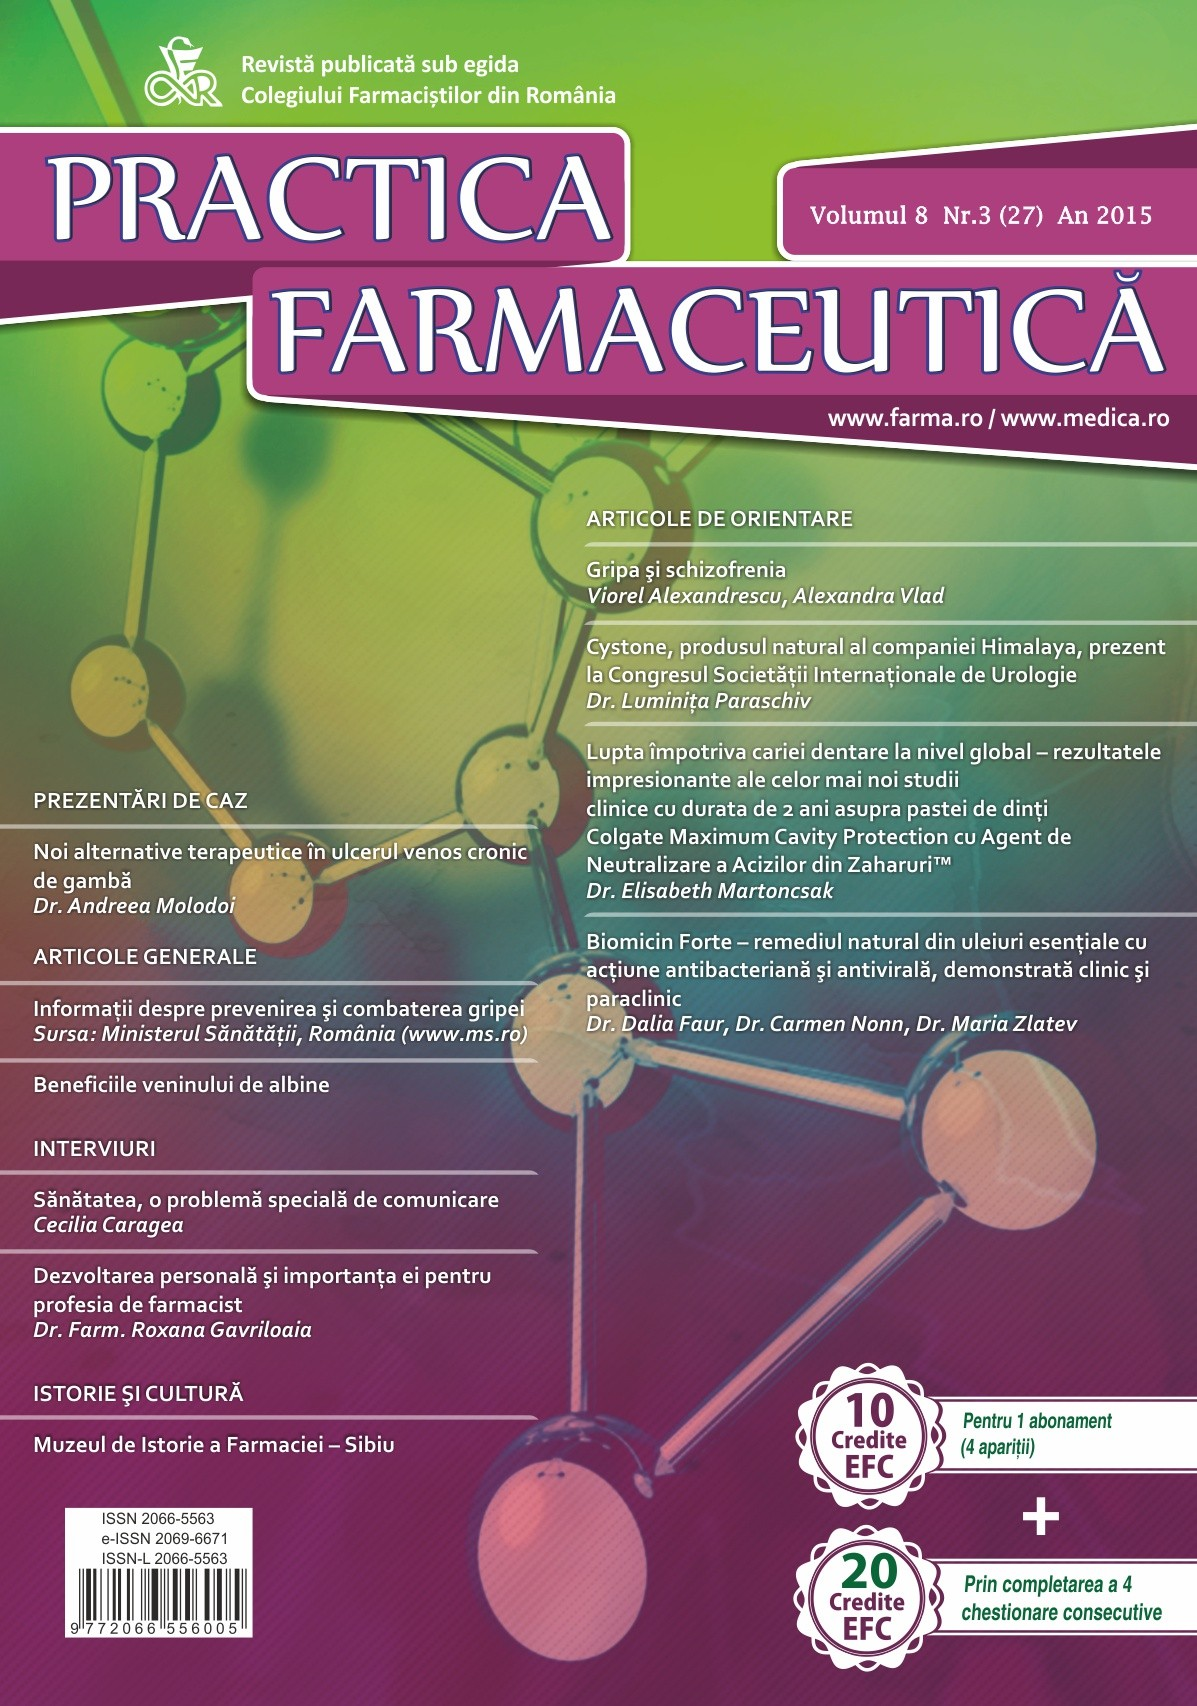 Revista Practica Farmaceutica, Vol. VIII, No. 3 (27), 2015